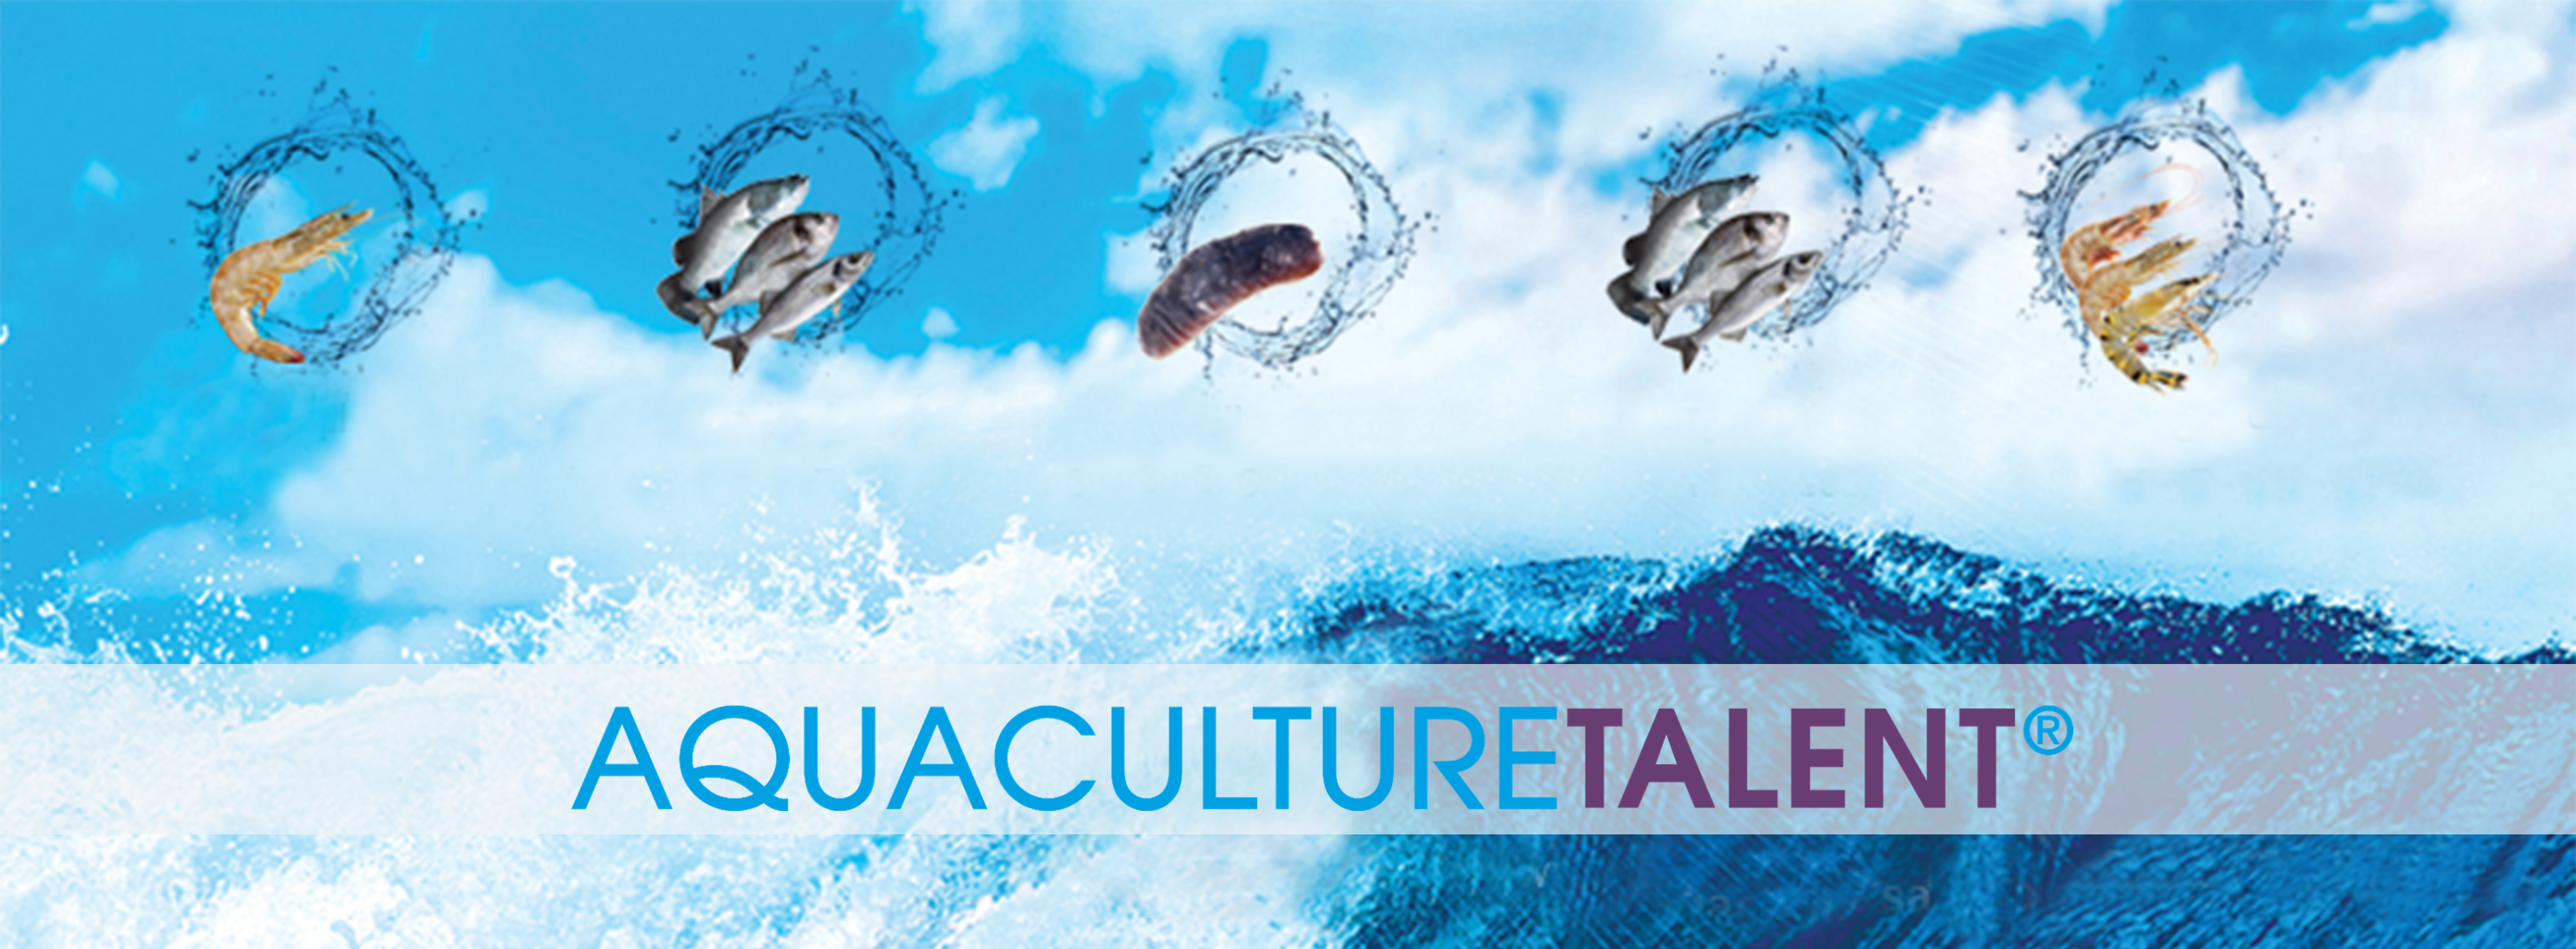 We are recruiting Chief Executive Officer for Saudi Arabia Aquaculture cumpany